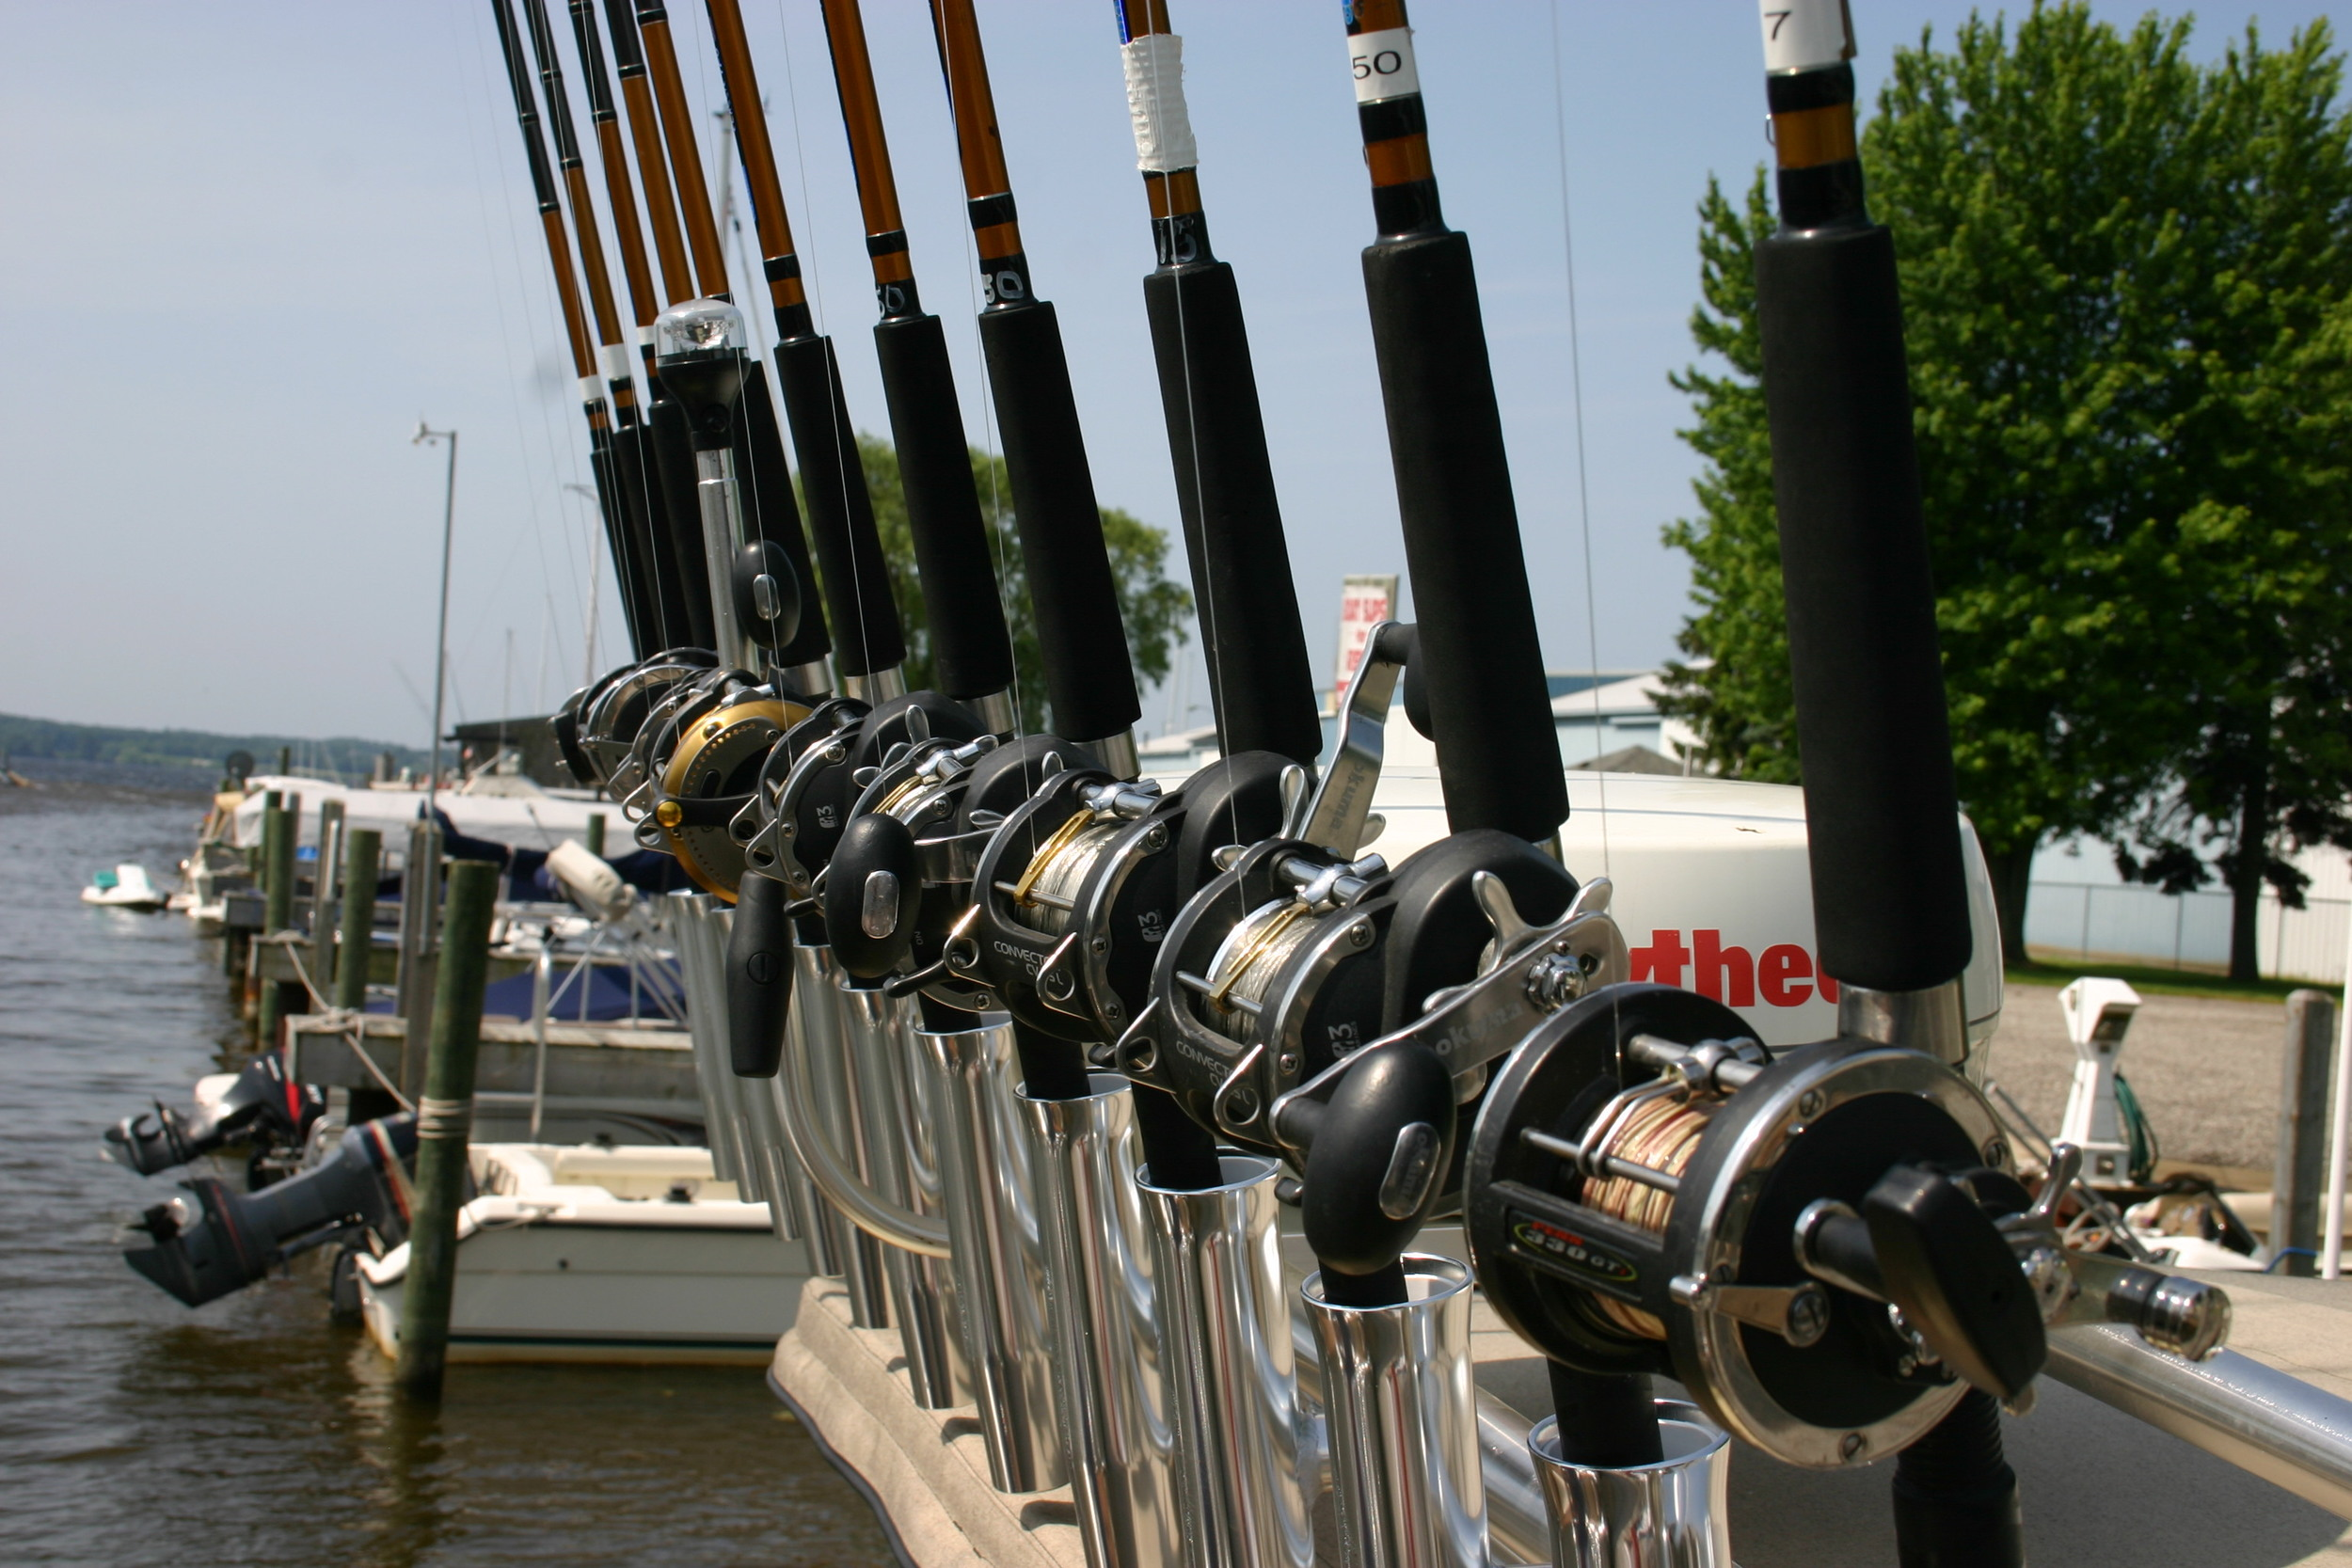 All new arch with over 30 rod holders and rods ensure you land that big catch.